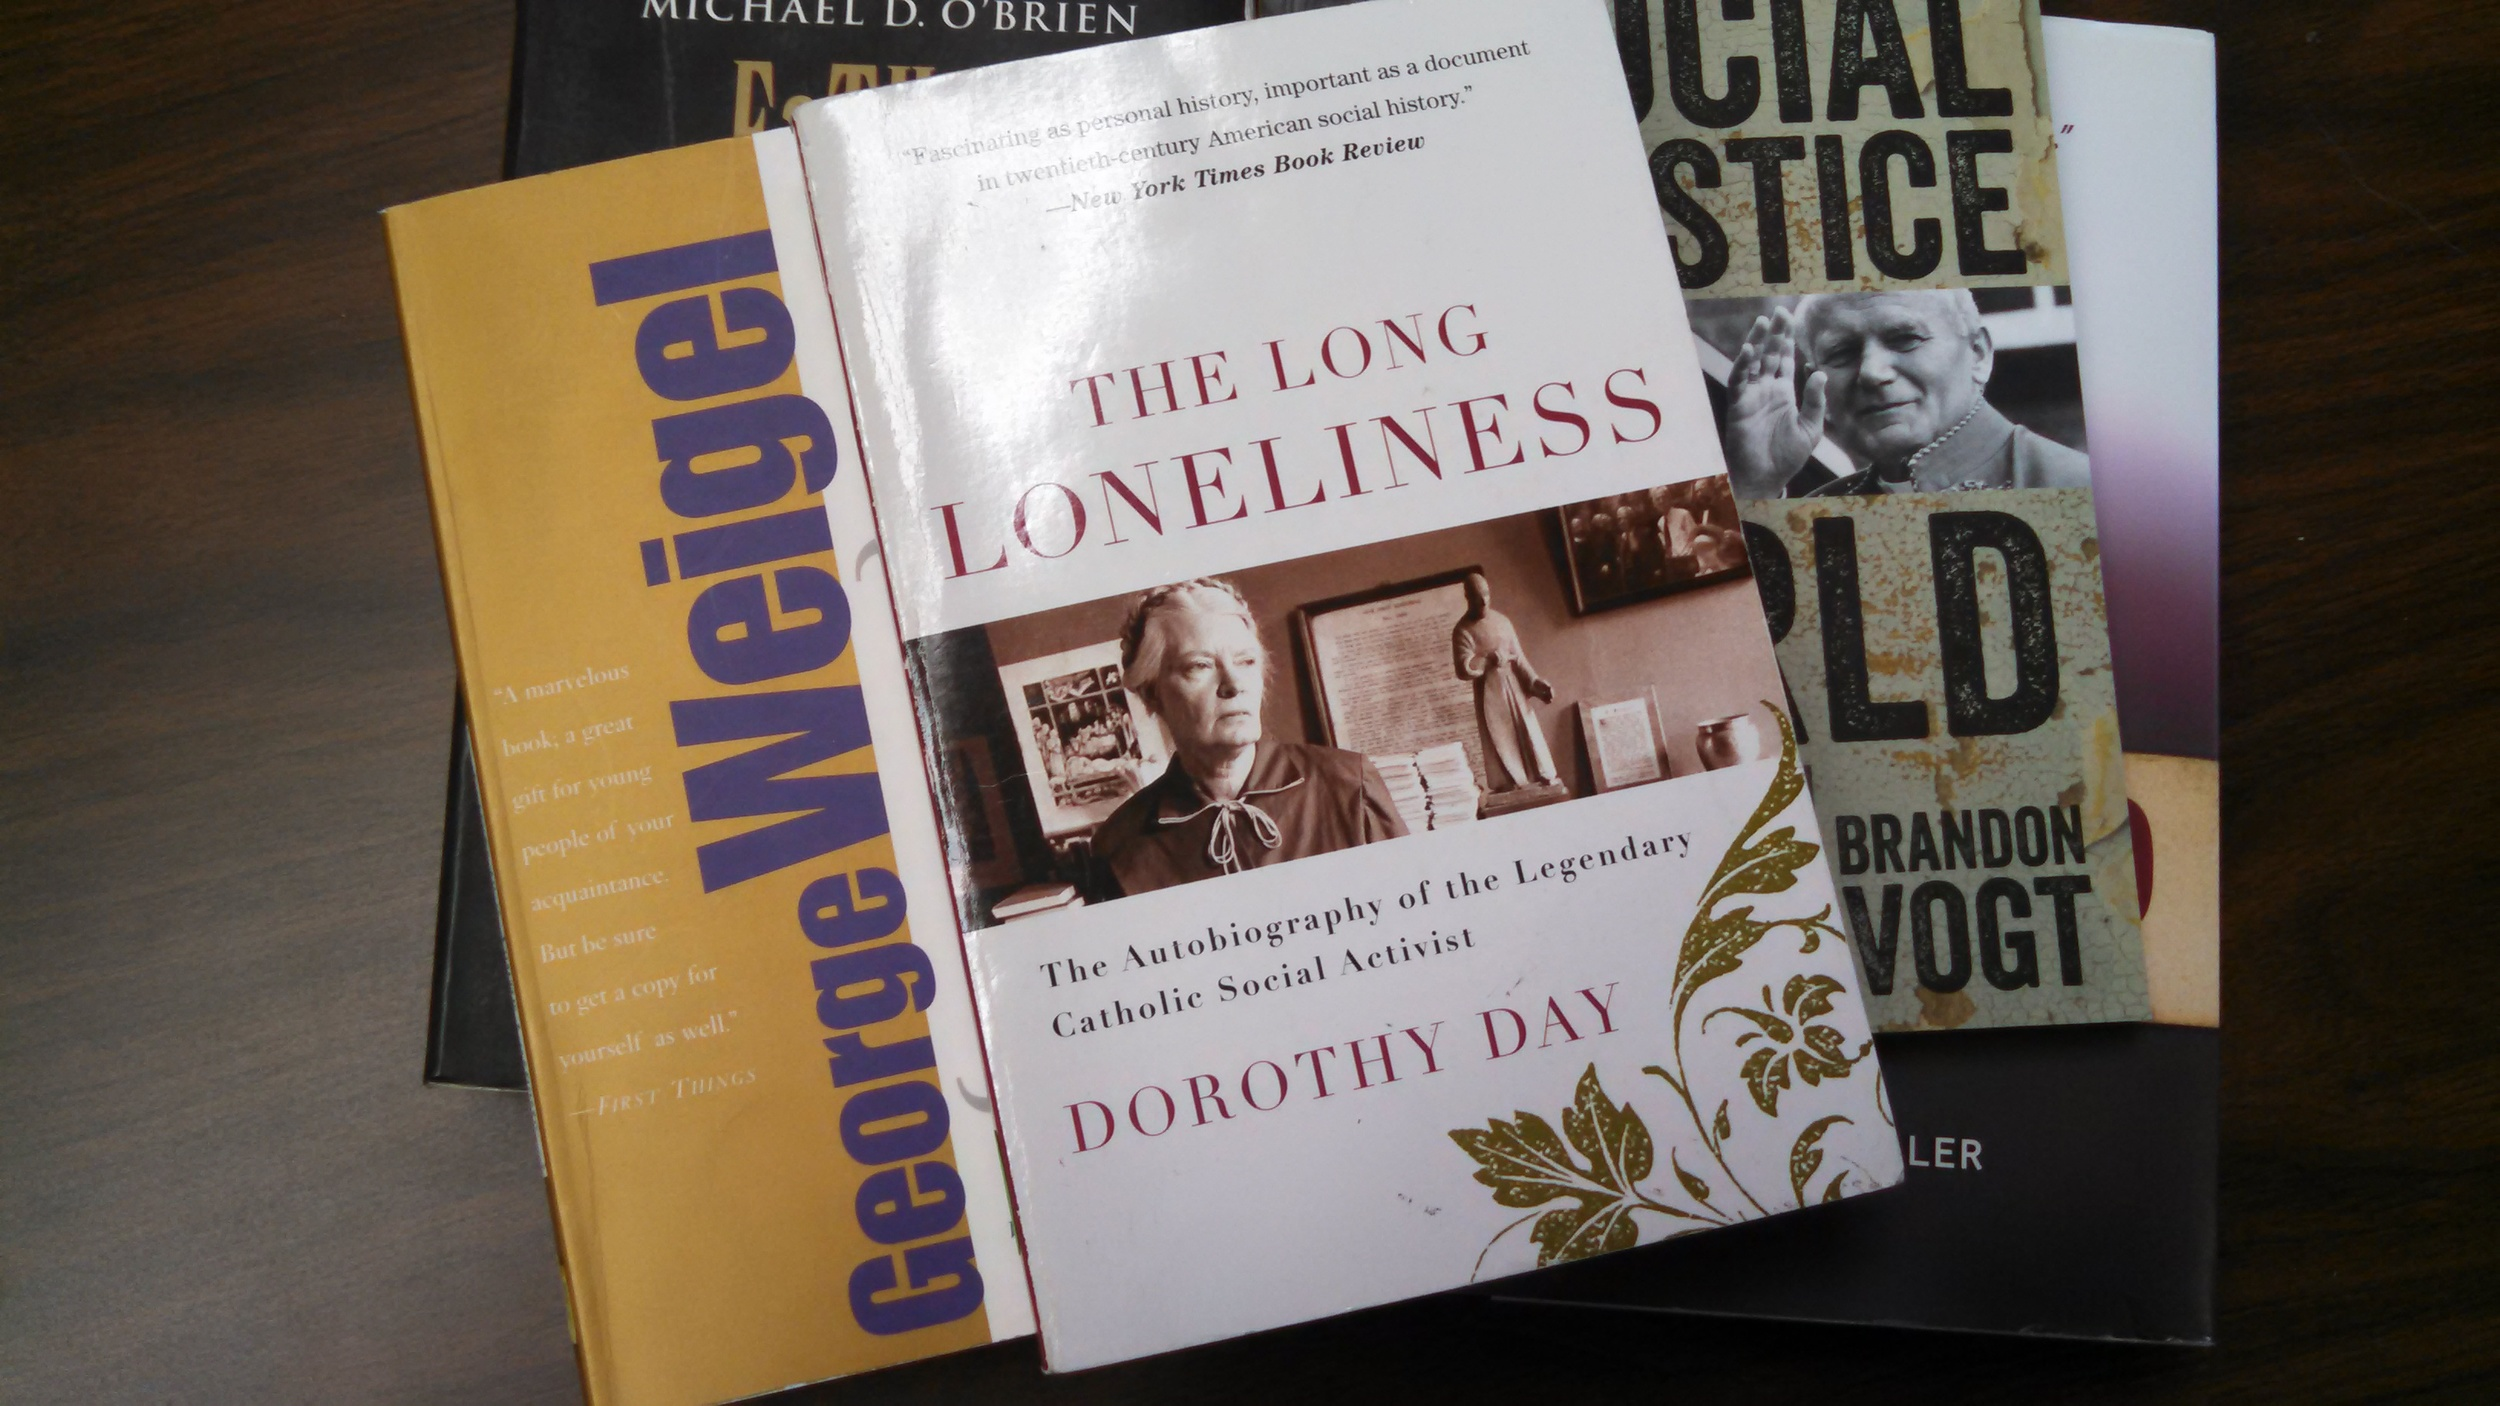 Some of our library books that influenced me - including The Long Loneliness.